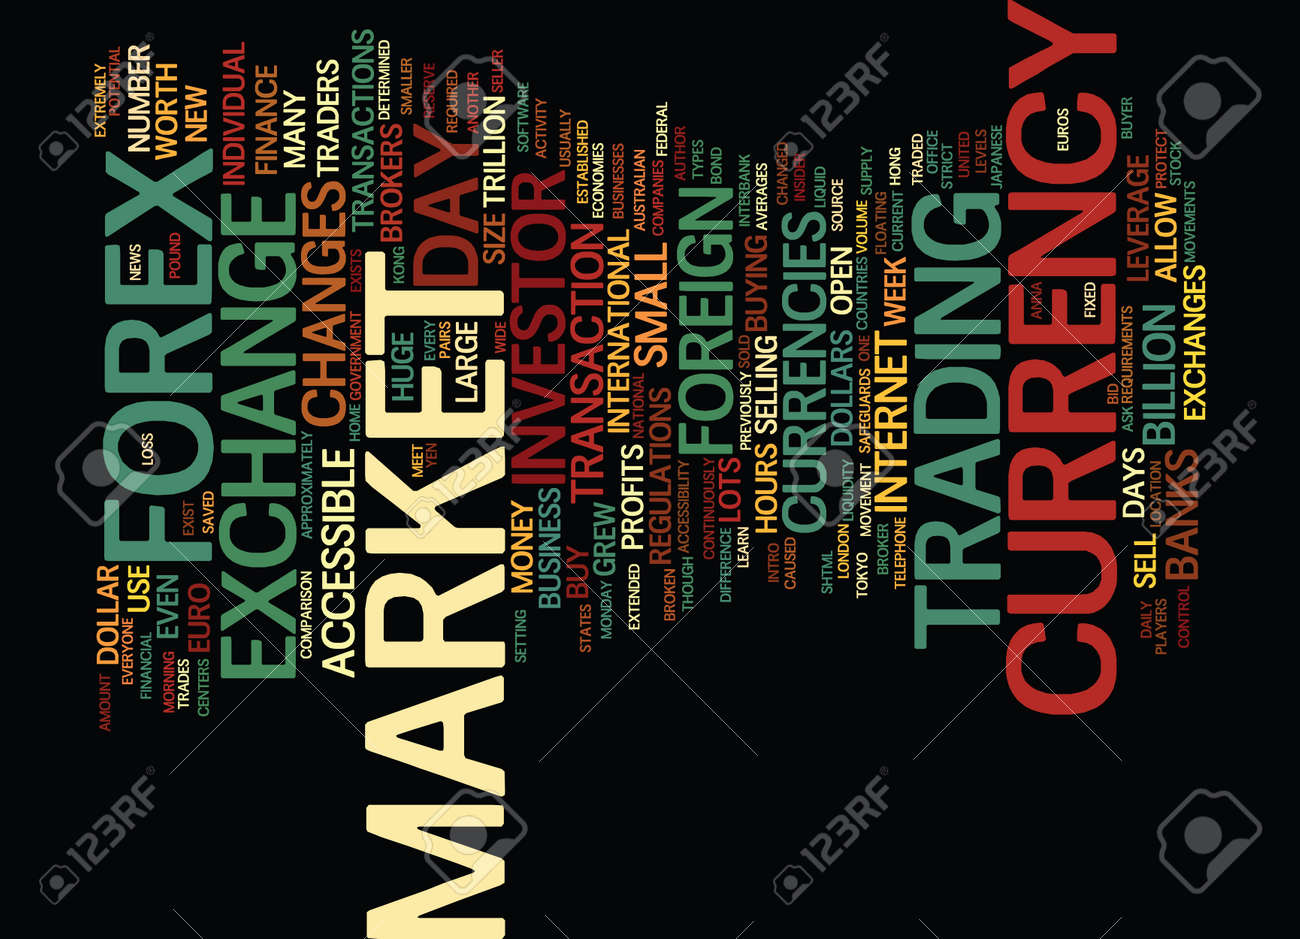 Learn currency trade intro to the forex market text background learn currency trade intro to the forex market text background word cloud concept stock vector biocorpaavc Image collections